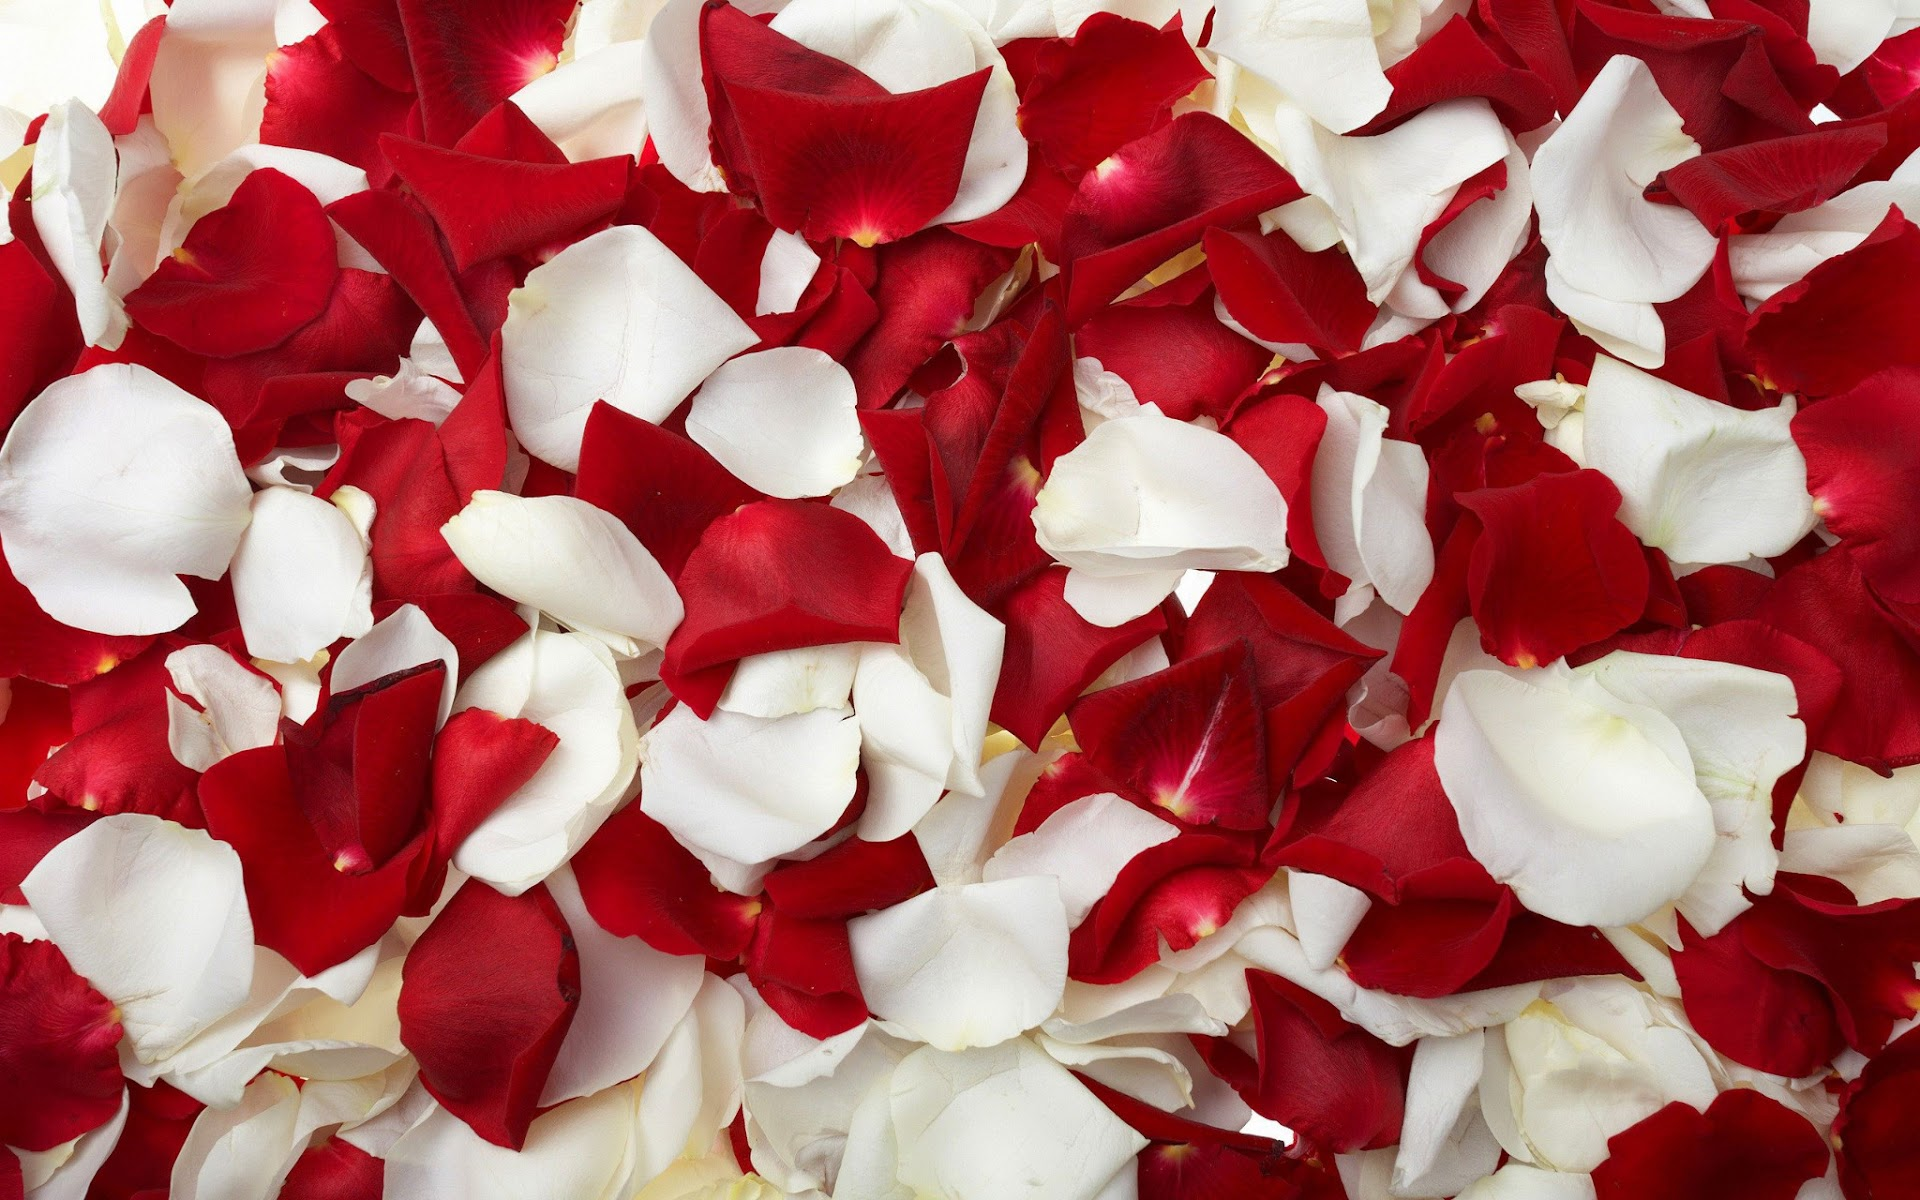 White Rose Petals Wallpaper Rose Petals hd Wallpaper is